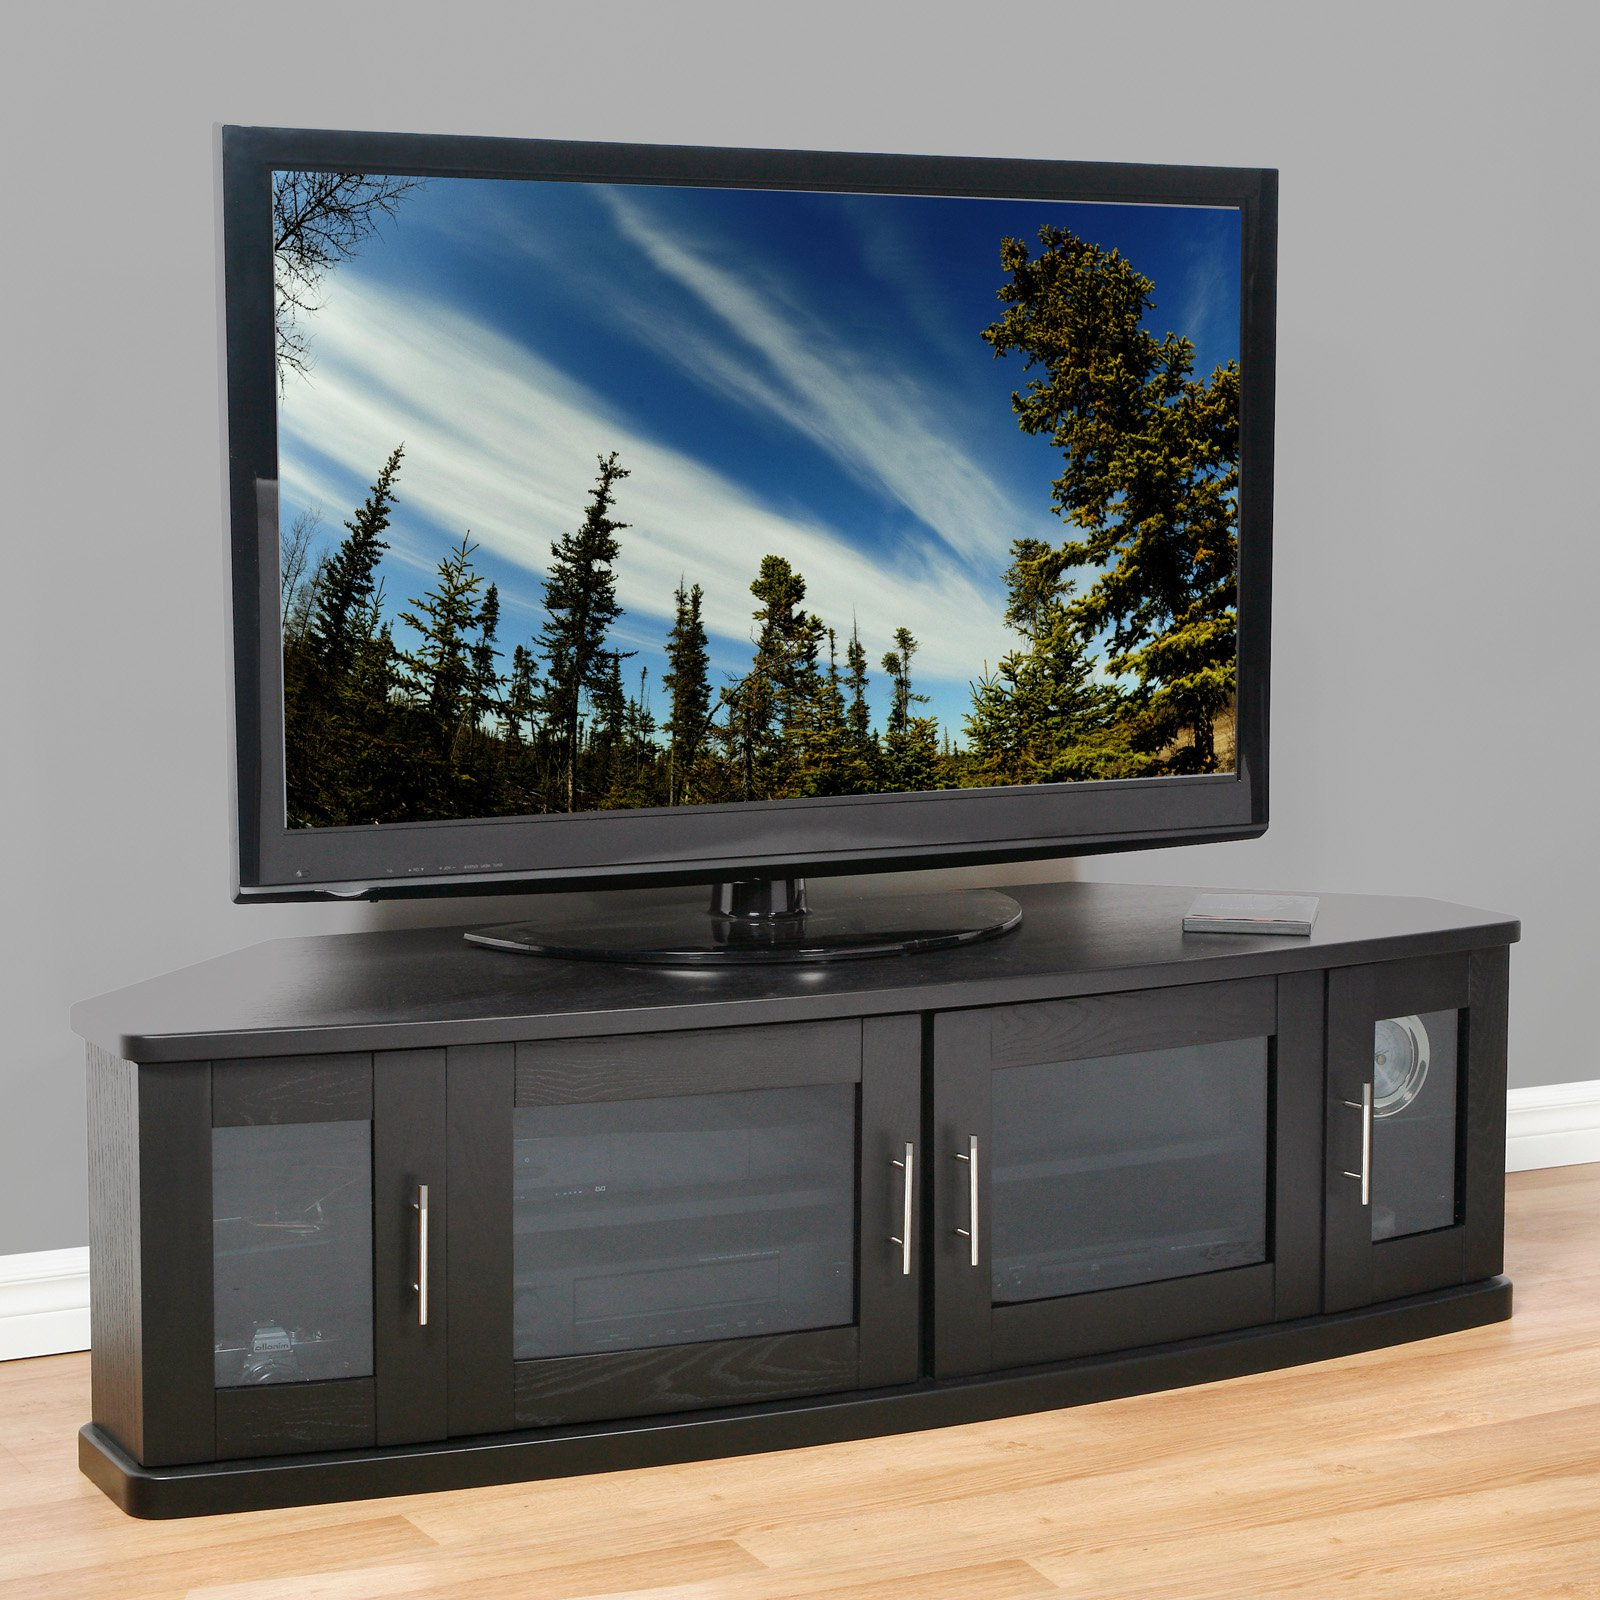 Chrome Display Stands Clear Tv With Glass Shelves Stand Corner With Best And Newest Glass Tv Cabinets (Gallery 6 of 20)